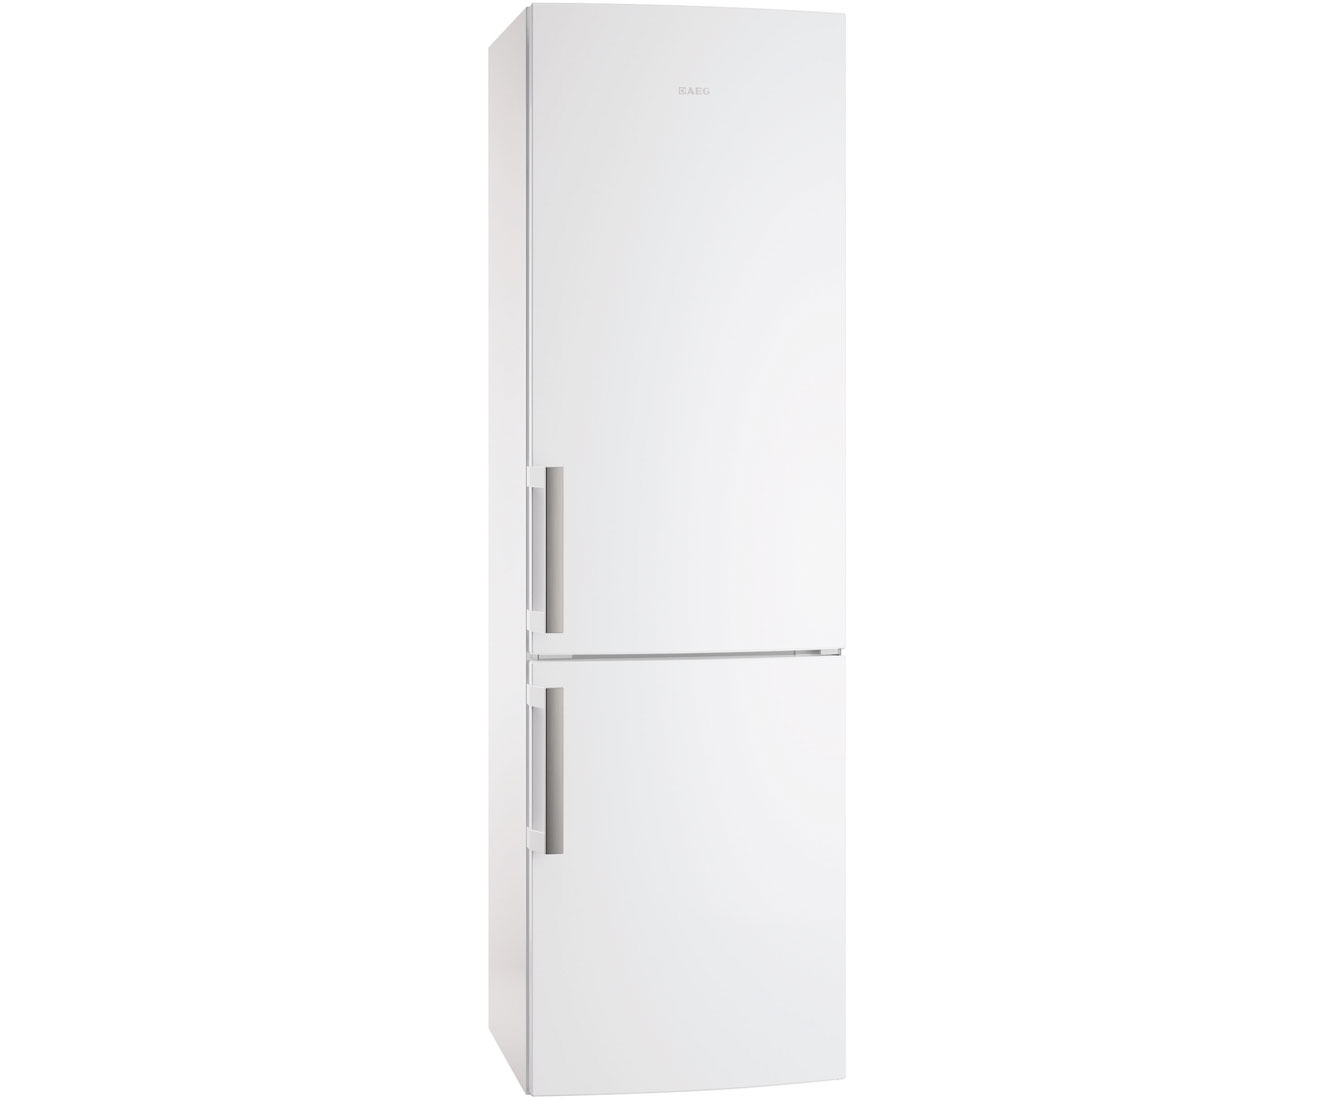 AEG Santo S53420CNW2 Free Standing Fridge Freezer Frost Free in White